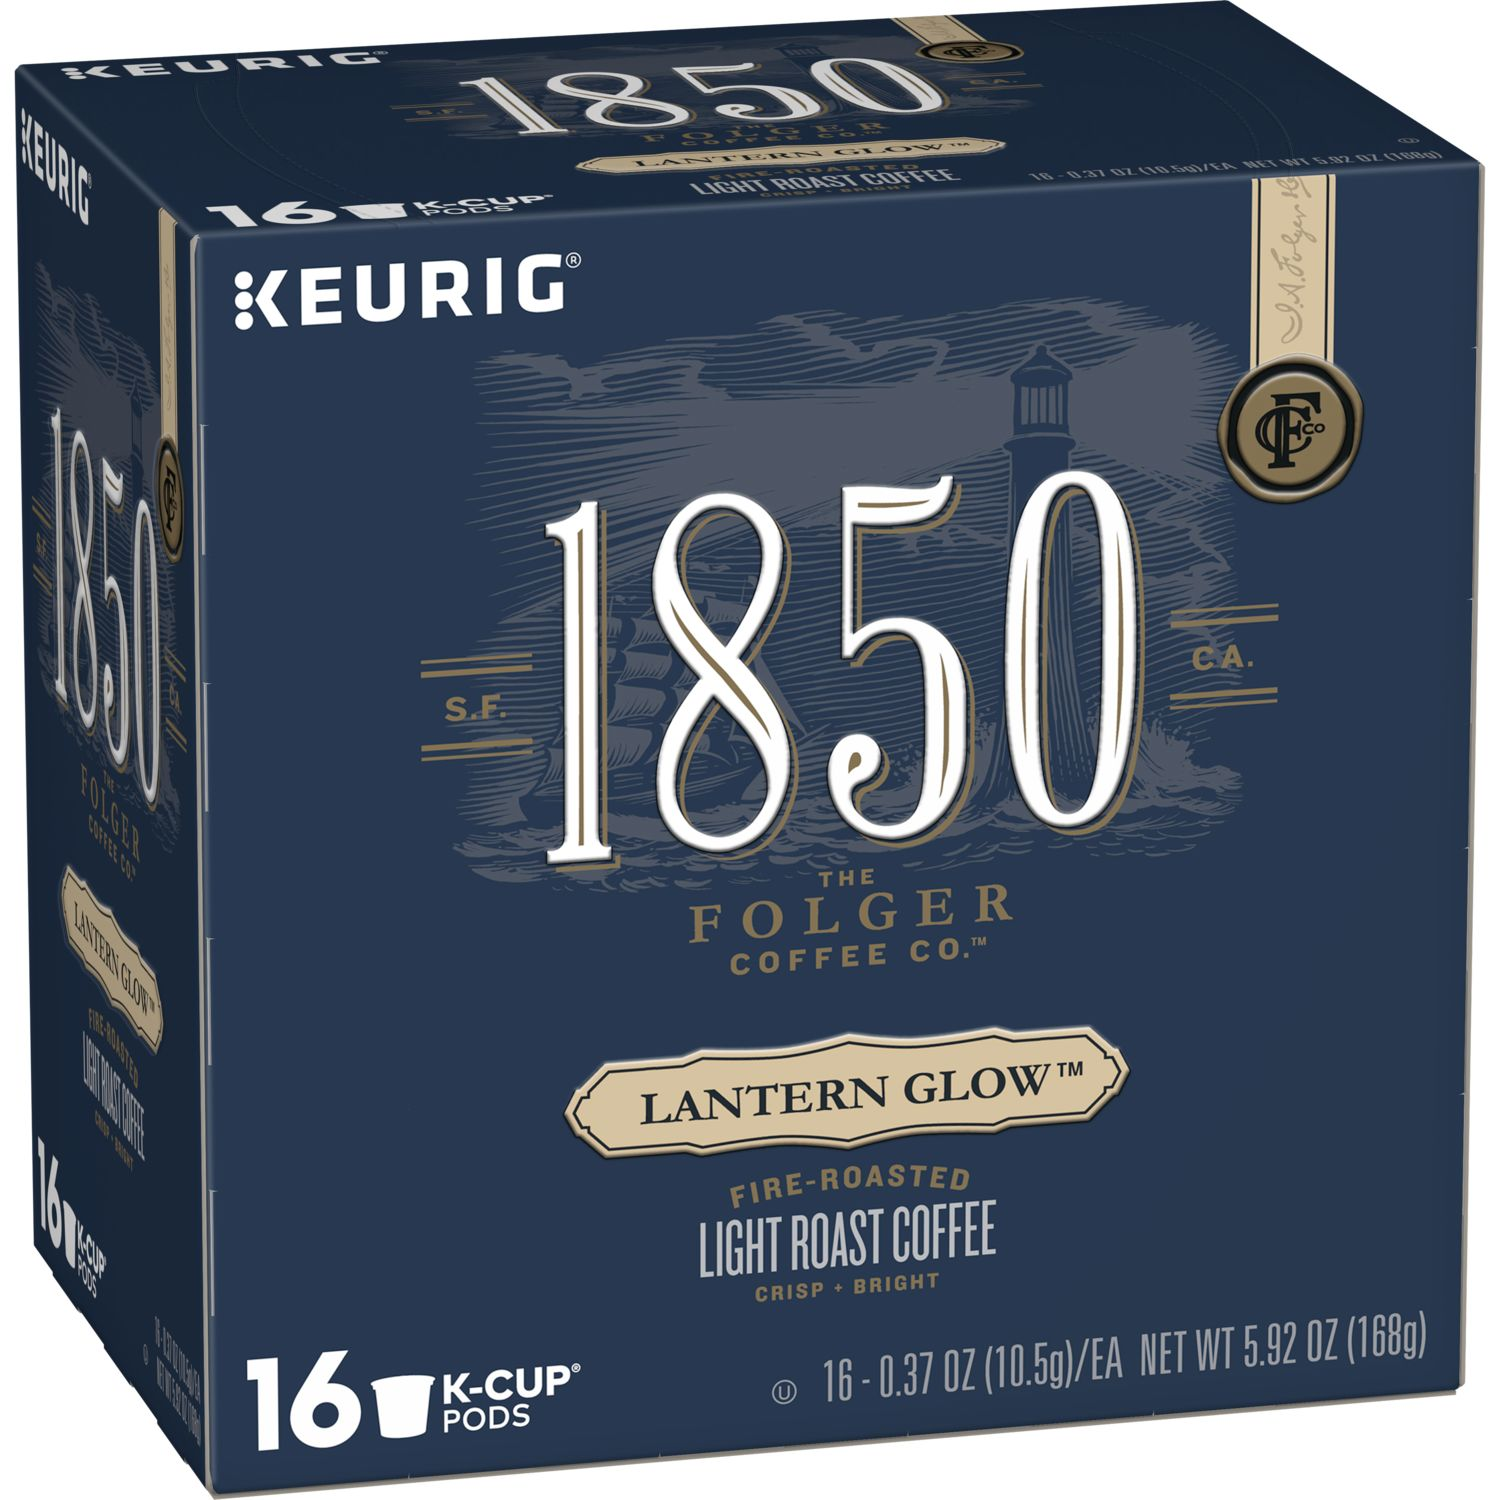 1850 Lantern Glow, Light Roast Coffee, K-Cup Pods for Keurig Brewers, 16-Count